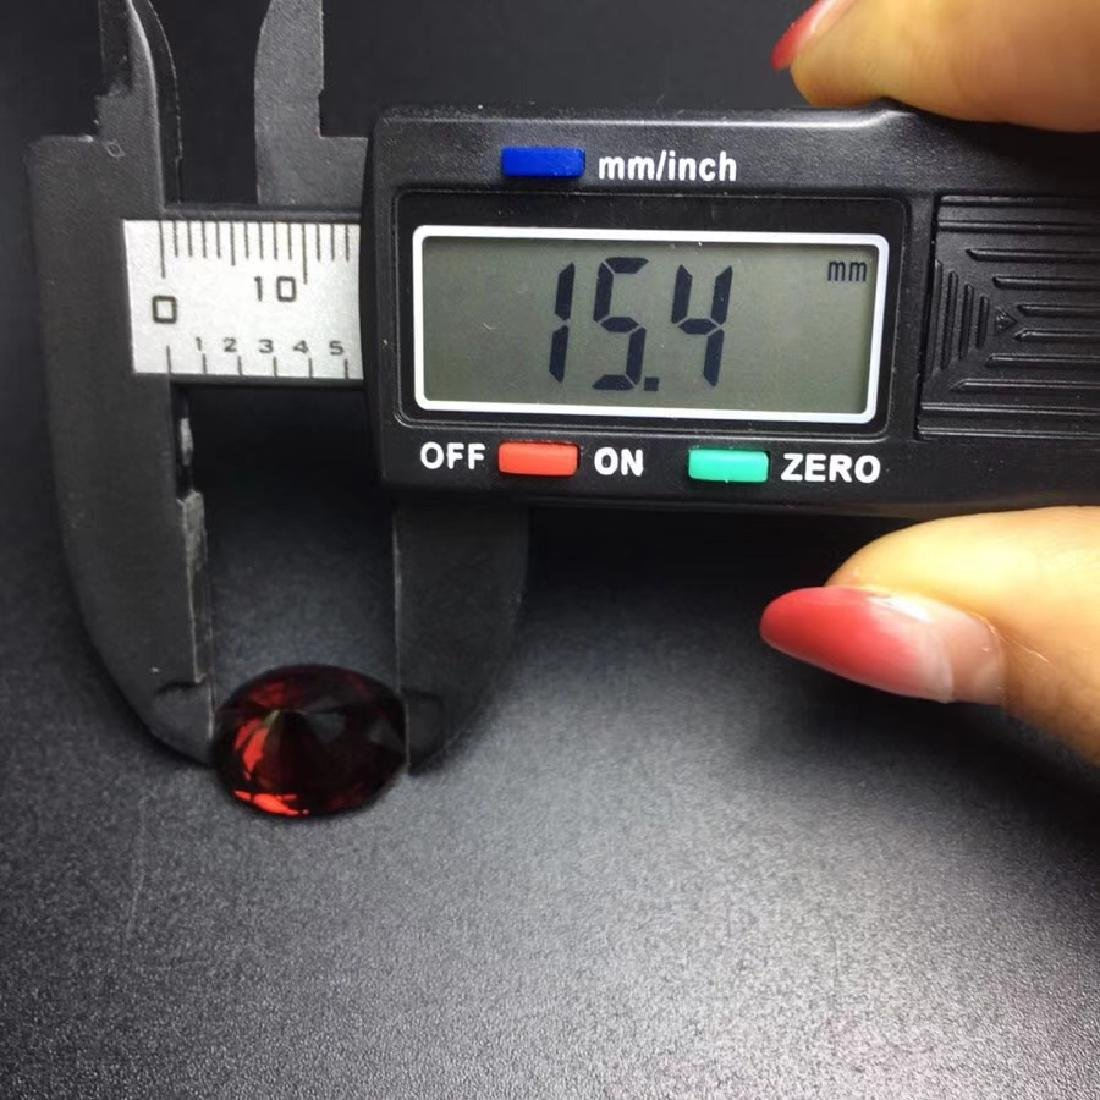 12.09 ct Garnet 12.0*15.4 mm Oval Cut - 6